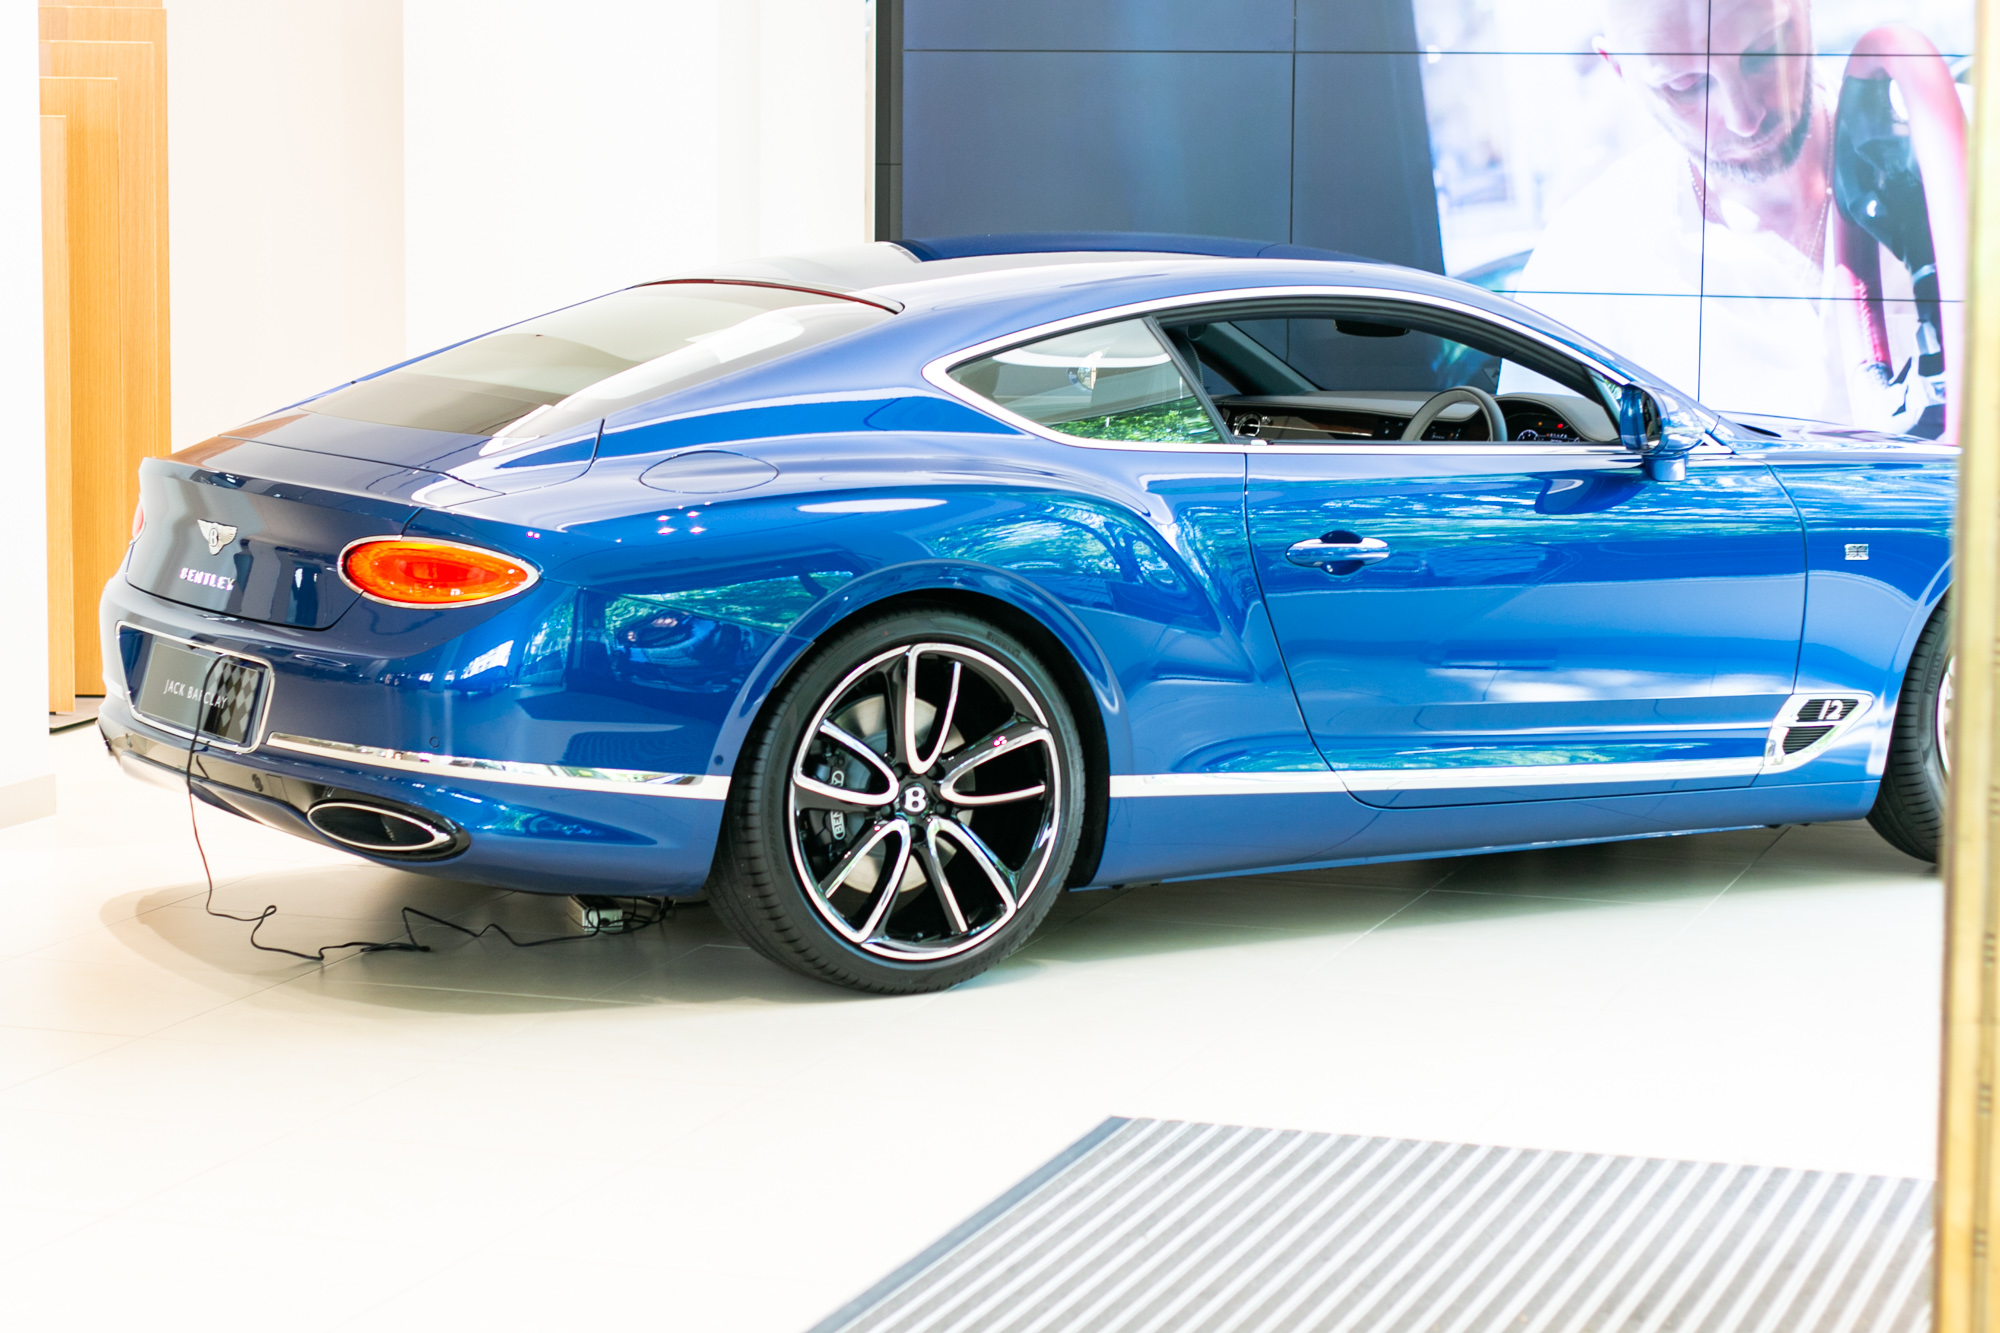 The New Bentley Continental Gt At Hr Owen London